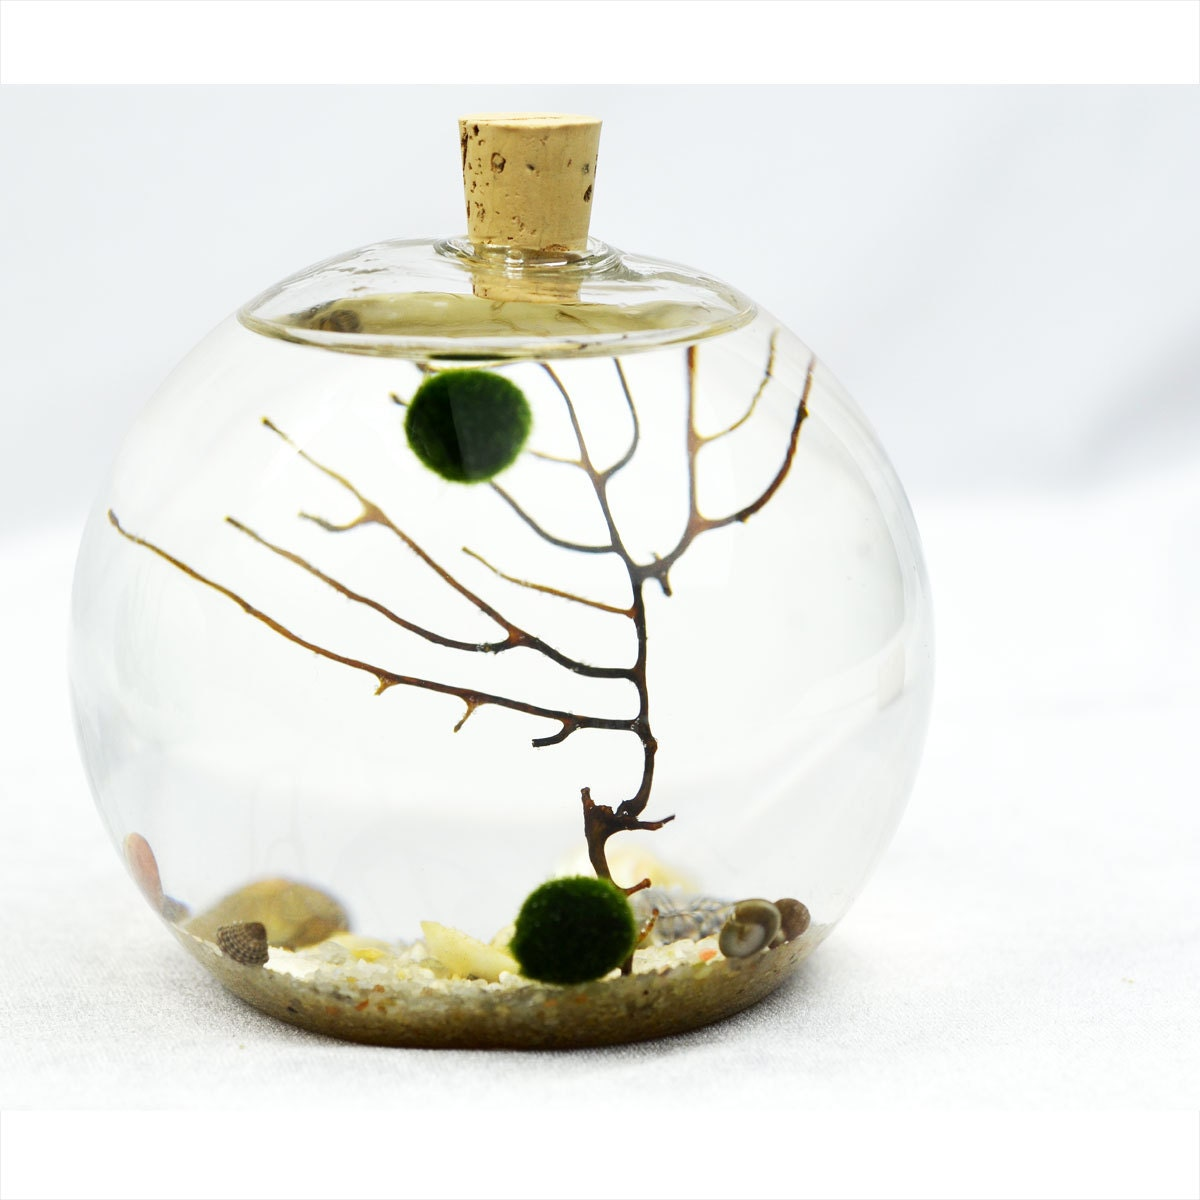 mc coy terrarium mousse japonais boule aquarium vase bulle. Black Bedroom Furniture Sets. Home Design Ideas